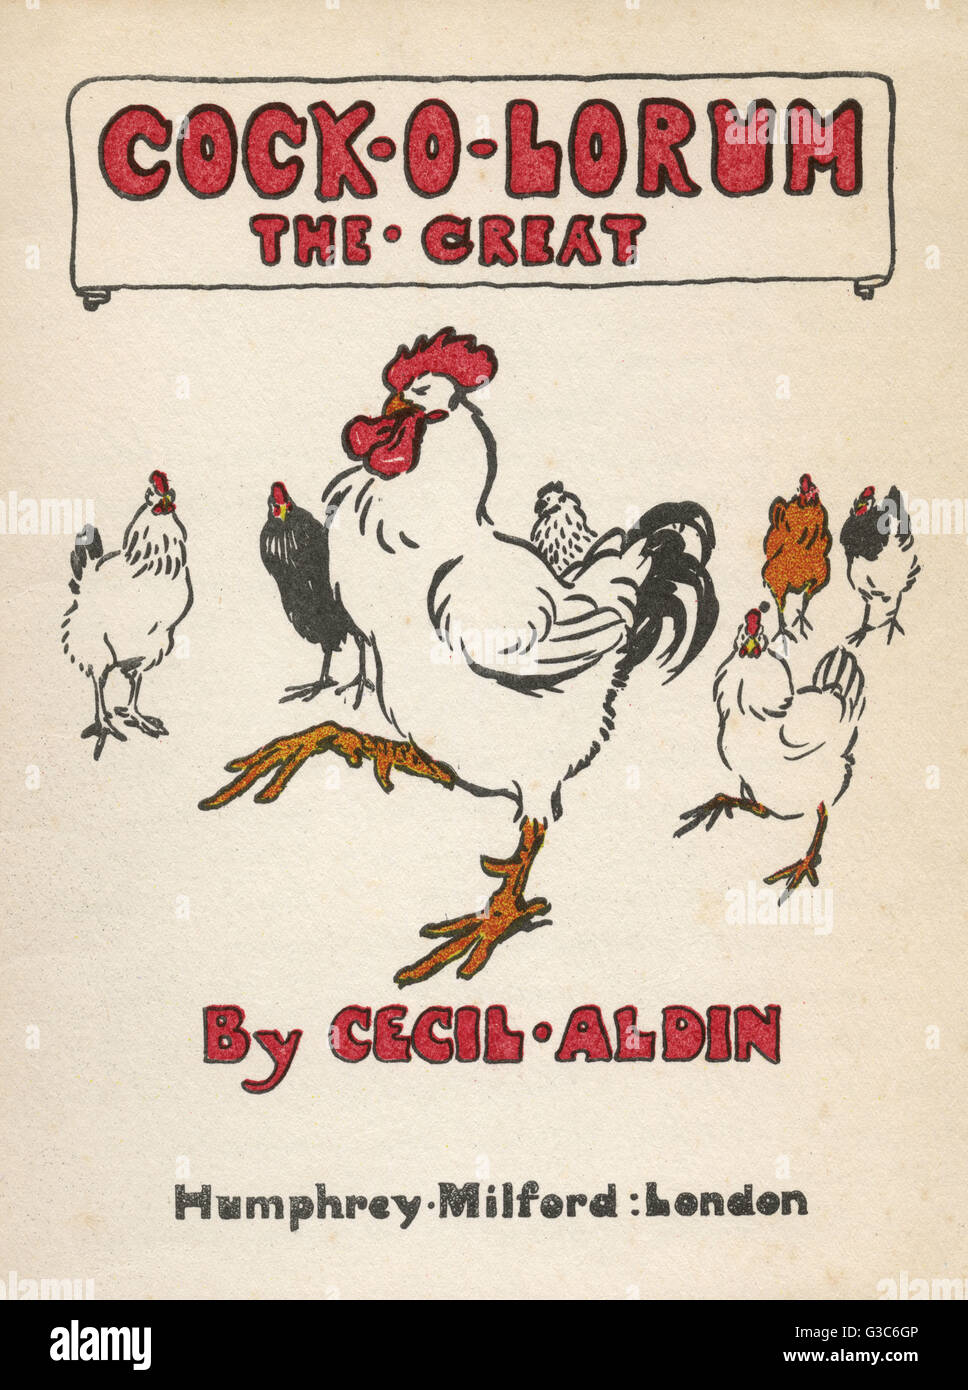 Title Page Design By Cecil Aldin, Cock-o-lorum The Great, In The ... Stock Photo - Title page design by Cecil Aldin, Cock-O-Lorum The Great, in the Letter Book Series. Showing a proud white cockerel surrounded by admiring ...